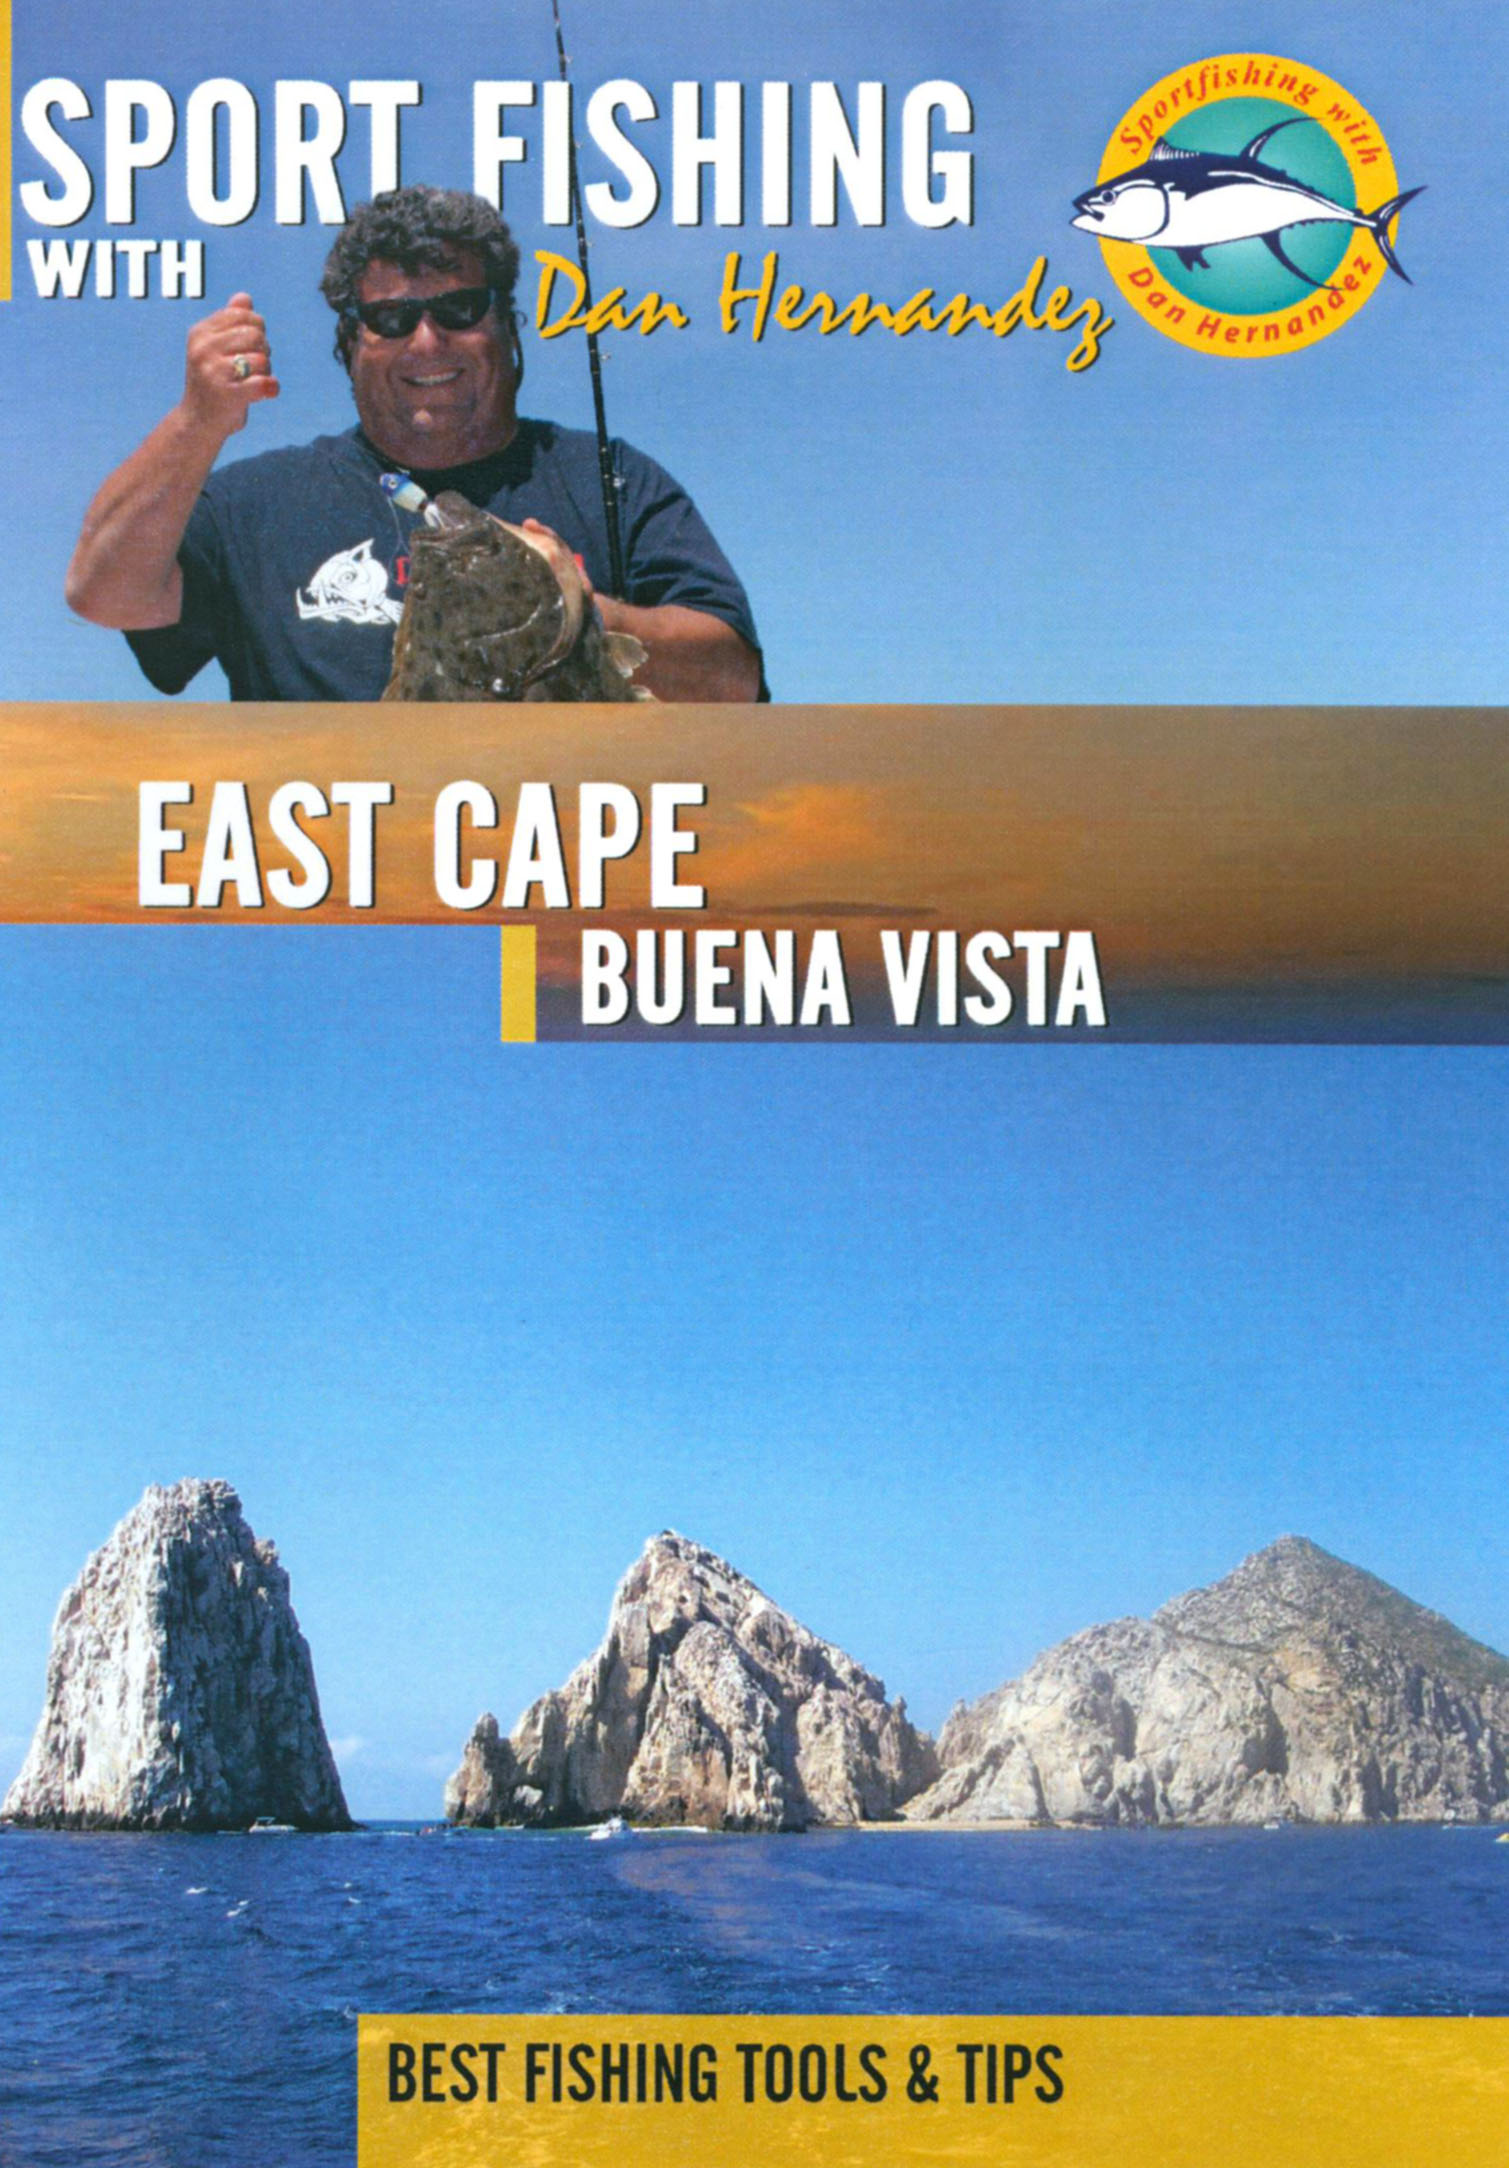 Sport Fishing With Dan Hernandez: East Cape Buena Vista